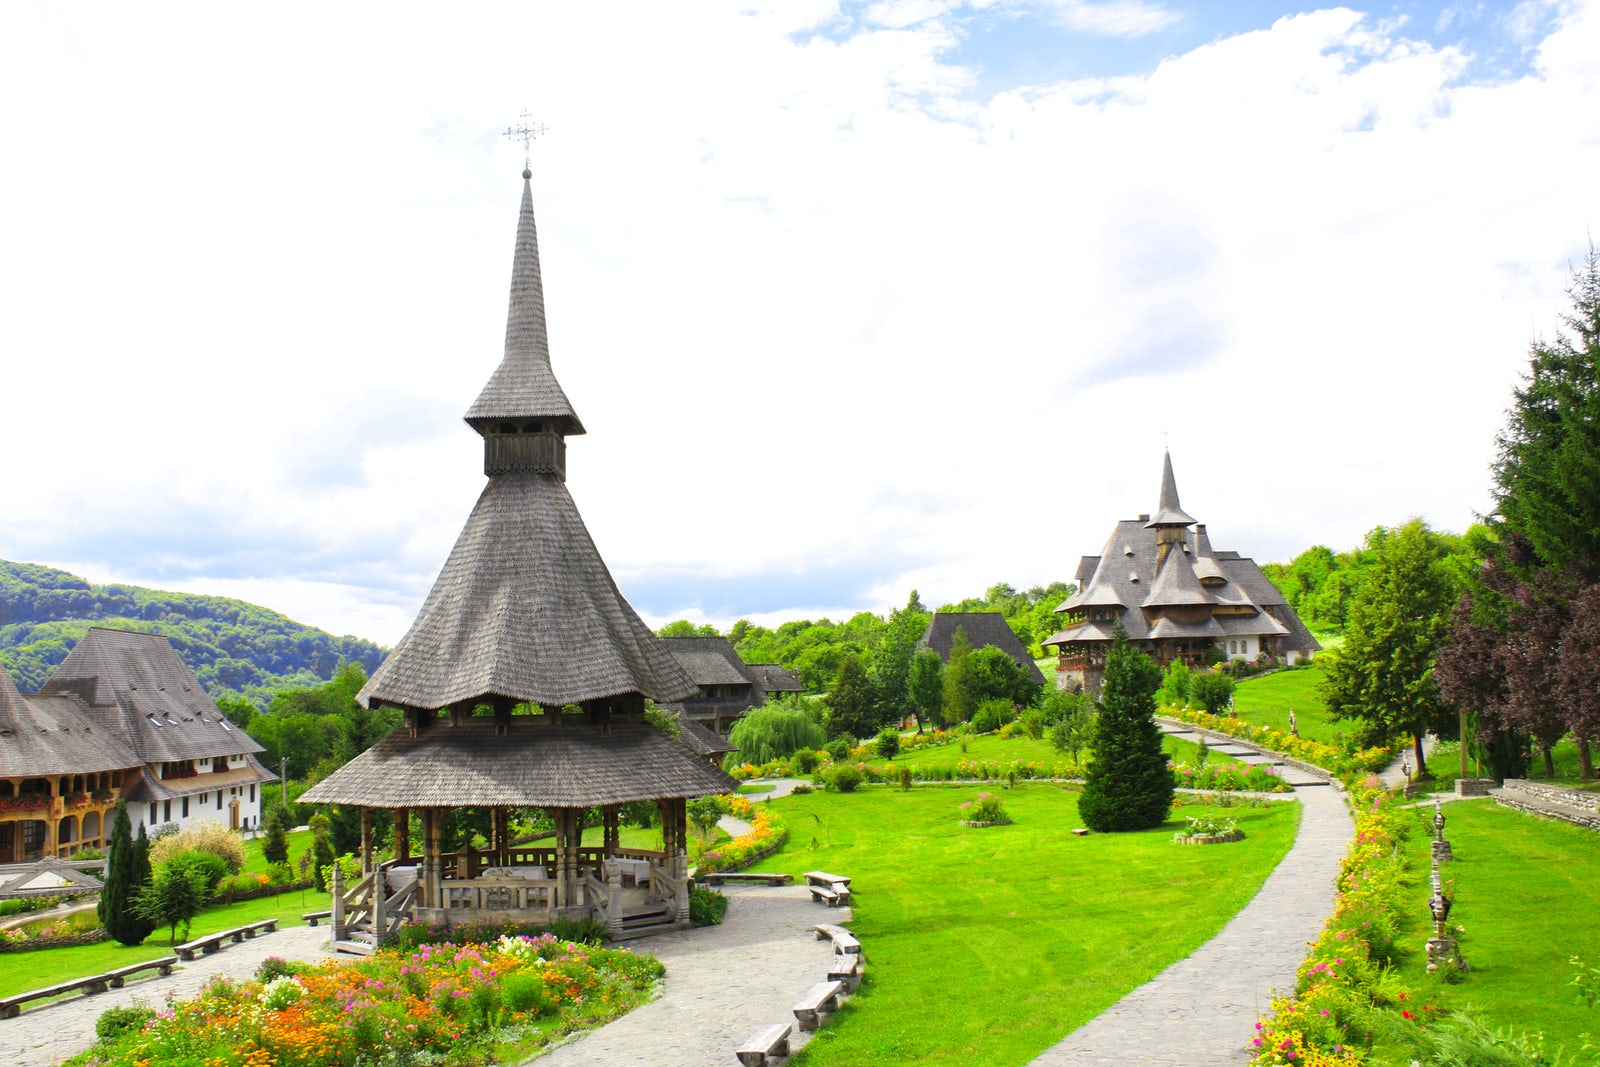 !i18n:en:data.regions:ro-maramures.picture.caption